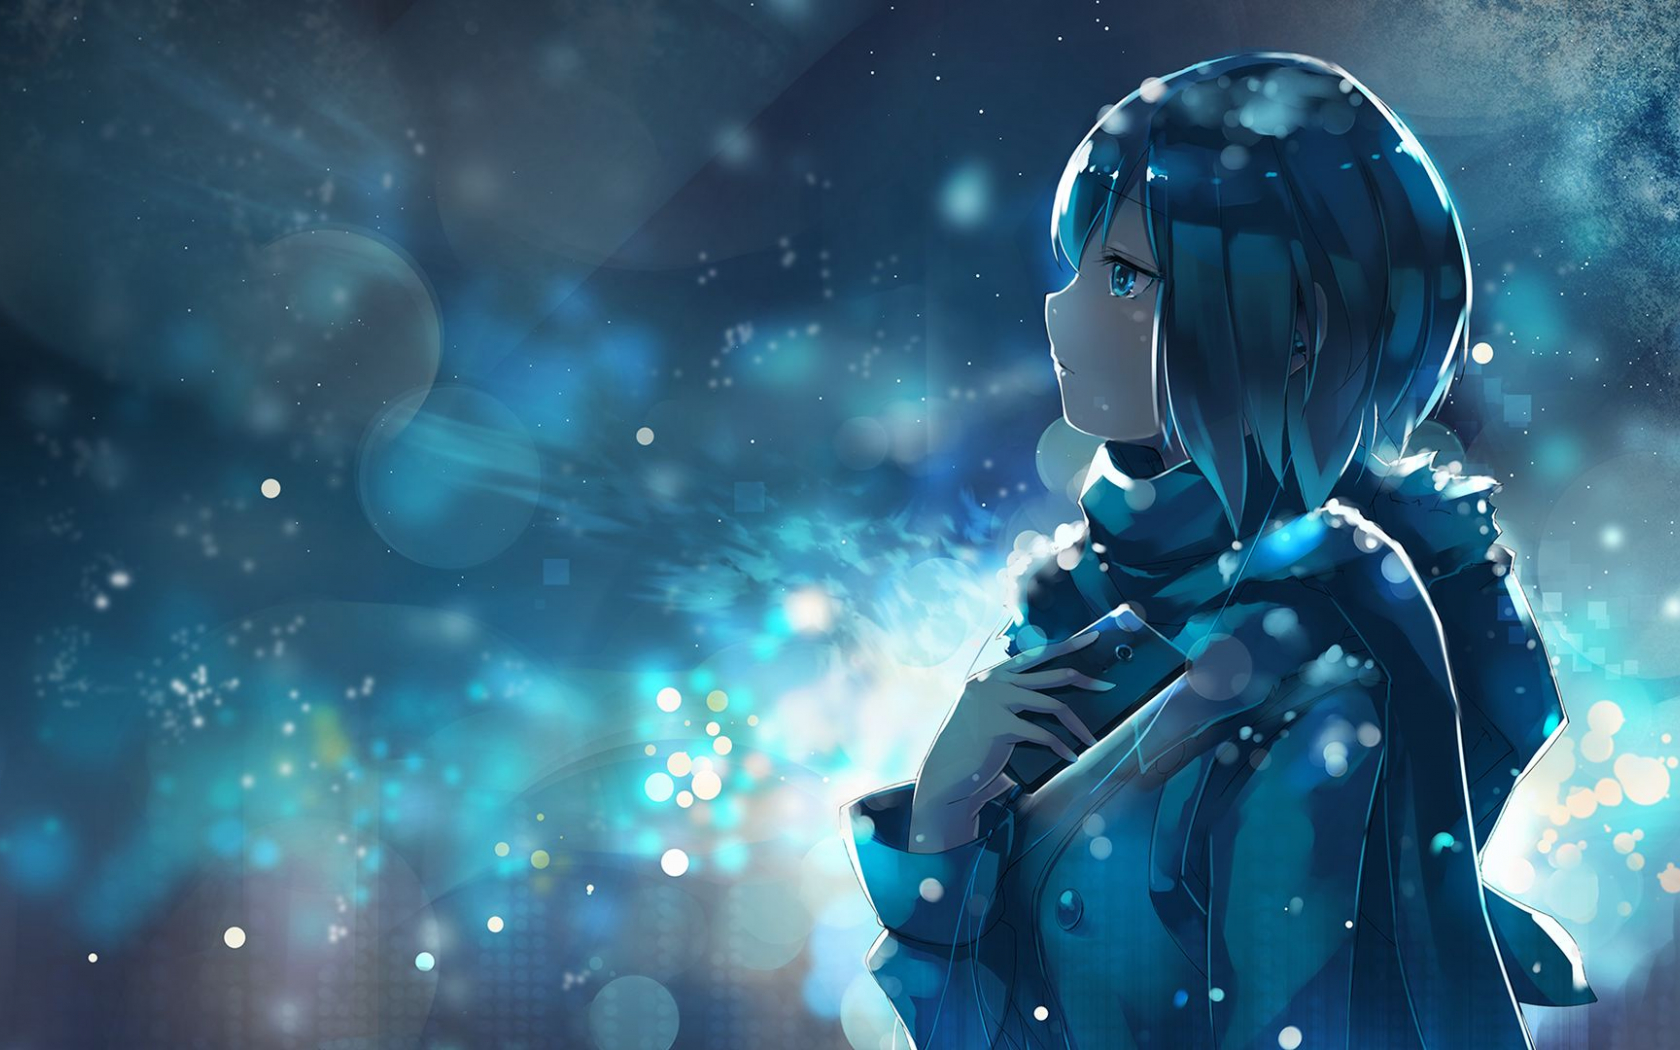 Free Download Beautiful Anime Wallpaper Hd 1920x1080 For Your Desktop Mobile Tablet Explore 76 Anime Wallpaper Hd Manga Wallpaper Cool Anime Wallpapers Epic Anime Wallpaper